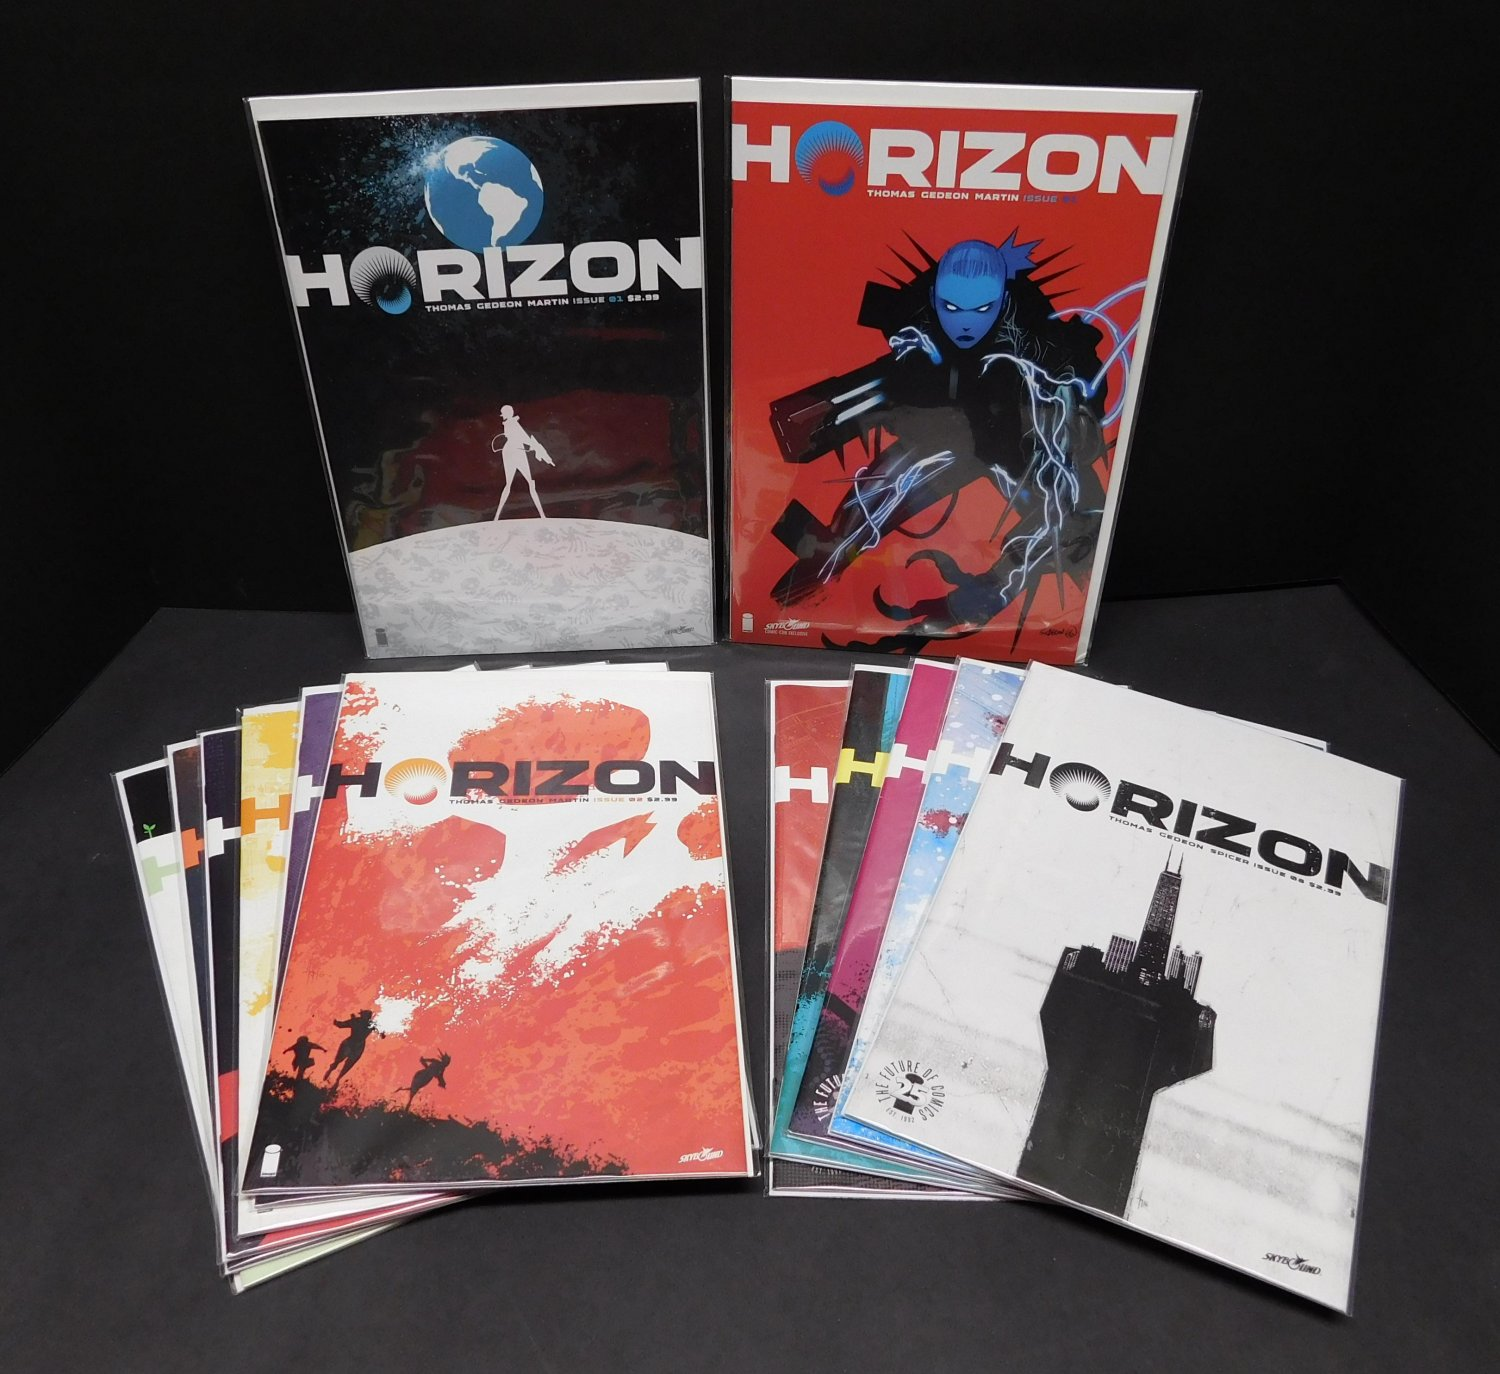 HORIZON Image Comic Book Complete Set/Lot/Run #1 2 3 4-10 11 12 13 14 15 16 Skybound SDCC Variant